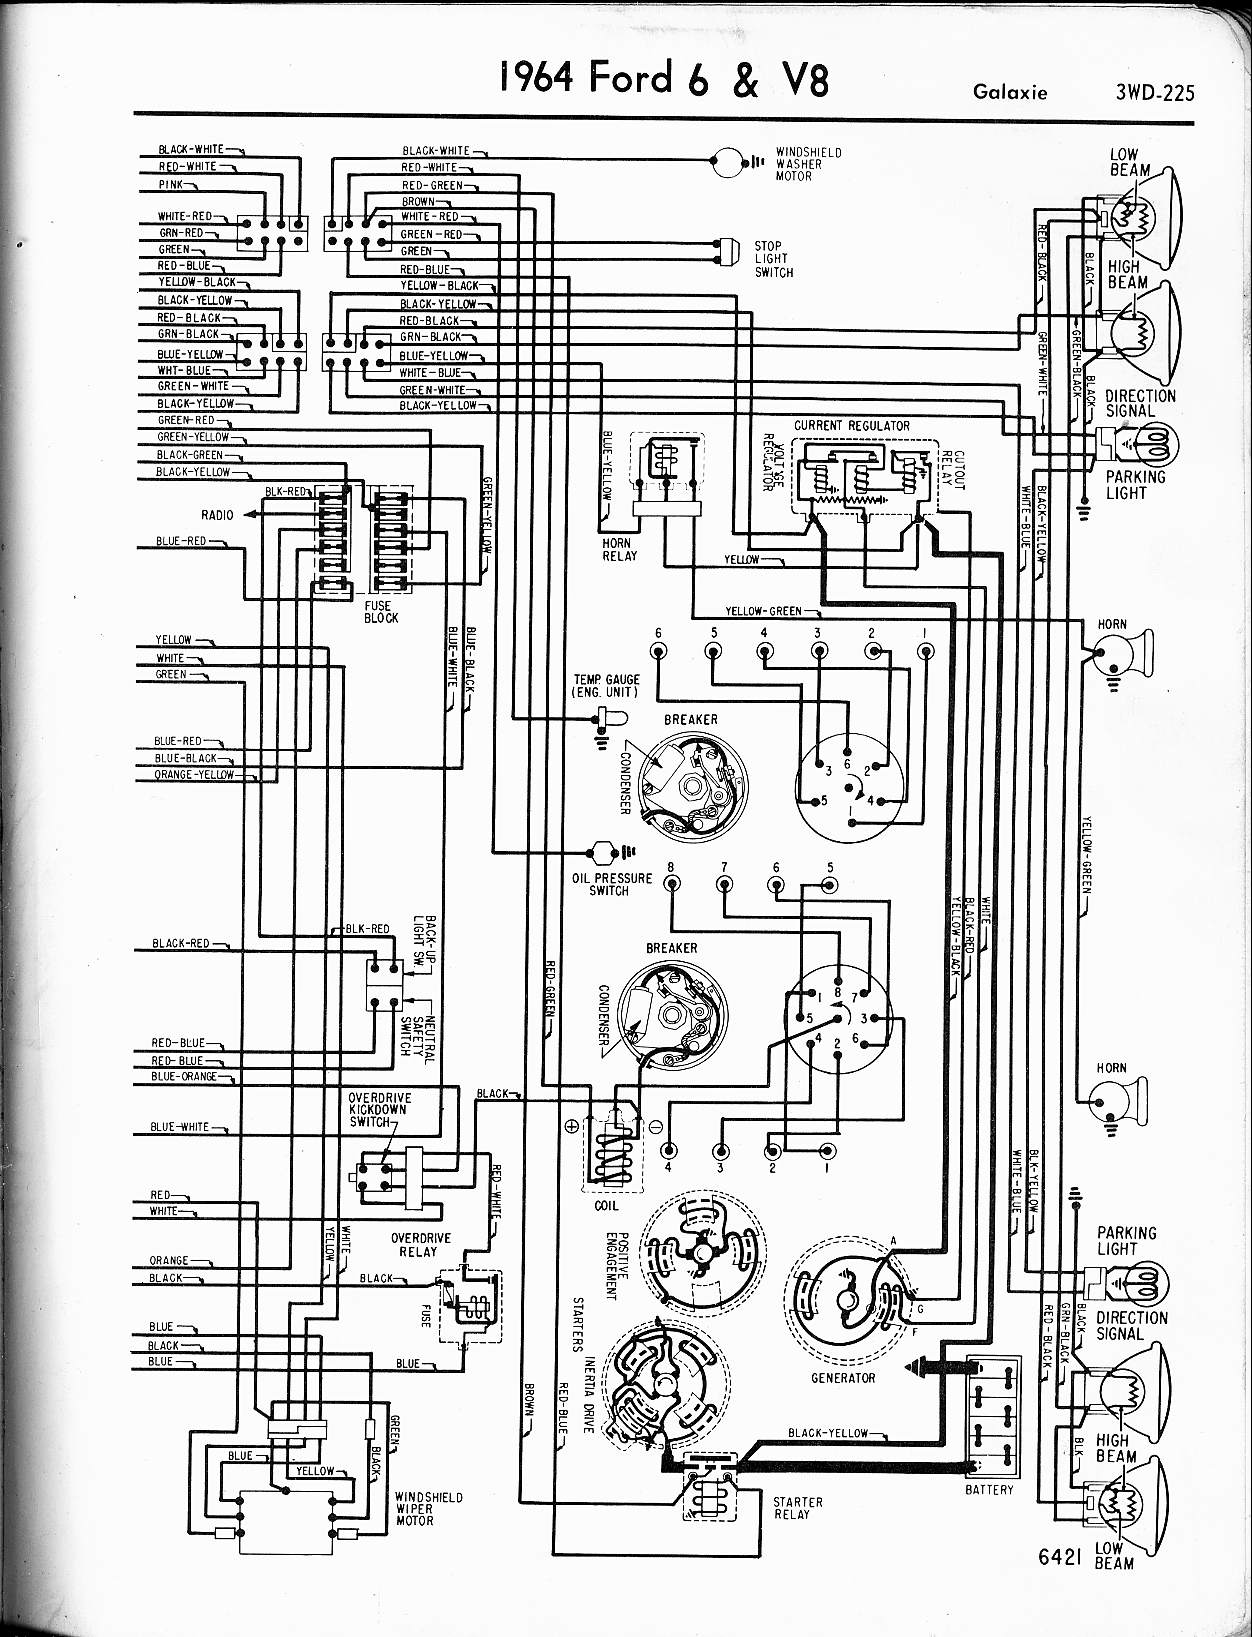 MWire5765 225 57 65 ford wiring diagrams El Camino Girls at bayanpartner.co